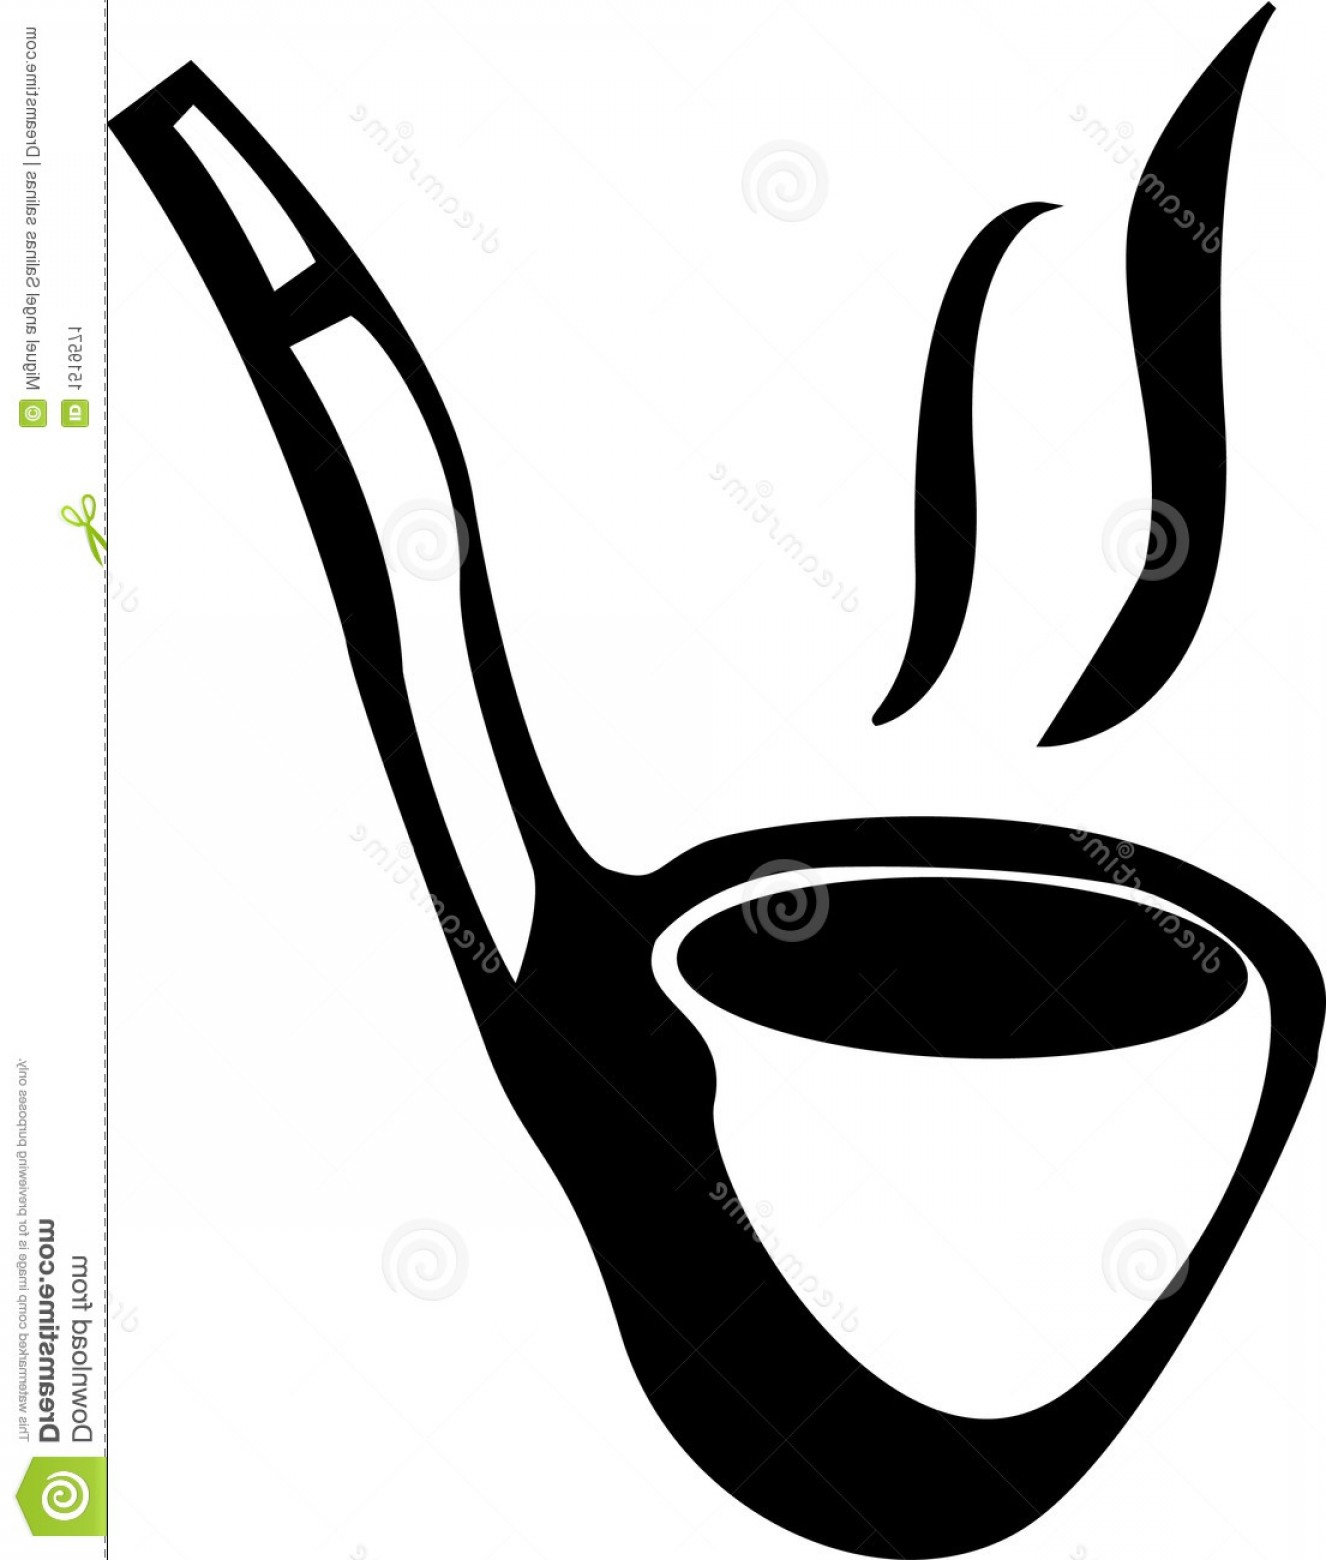 1326x1560 Stock Image Smoking Pipe Vector Illustration Image Orangiausa